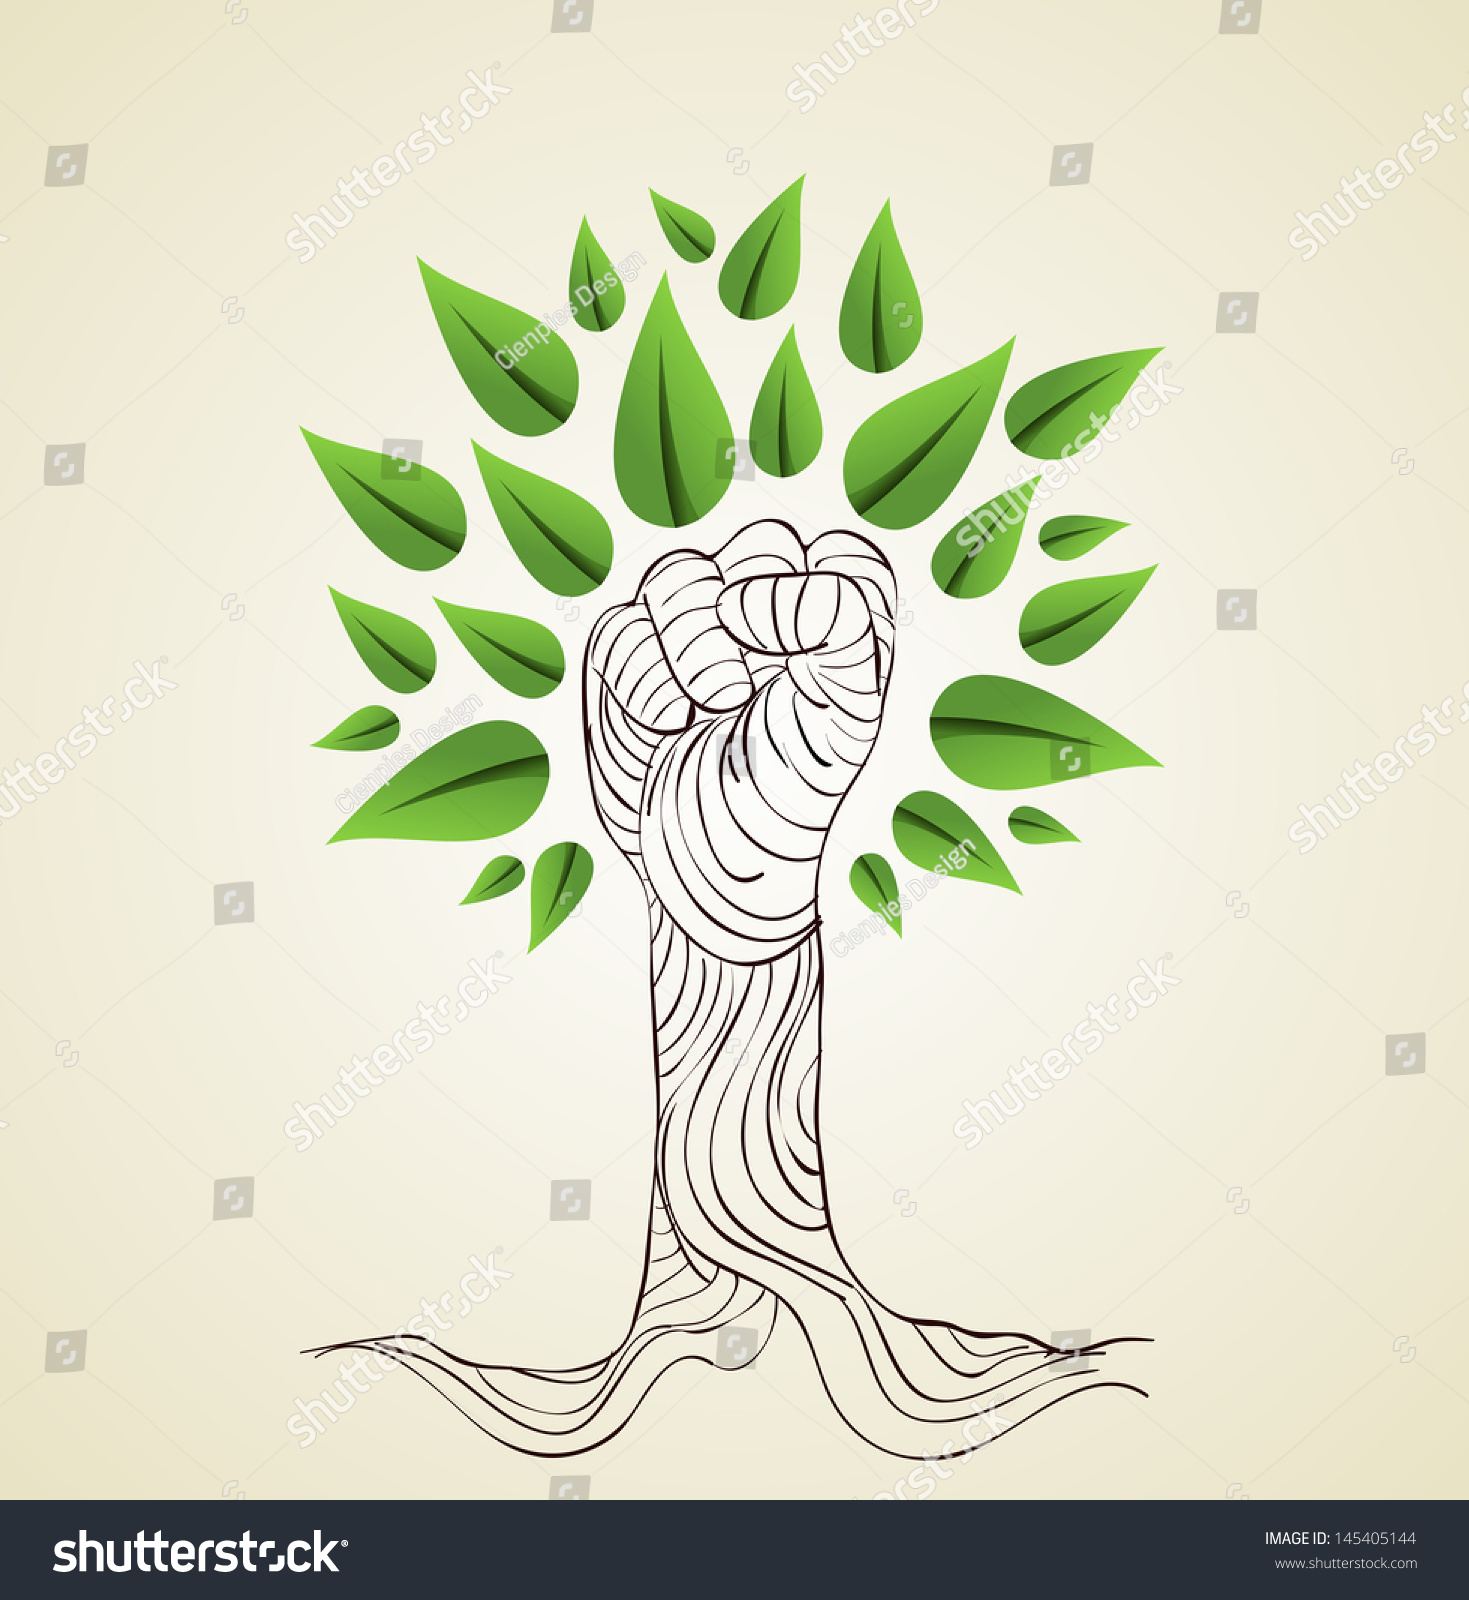 Hand Draw Style Save Earth Tree Stock Vector 145405144 - Shutterstock